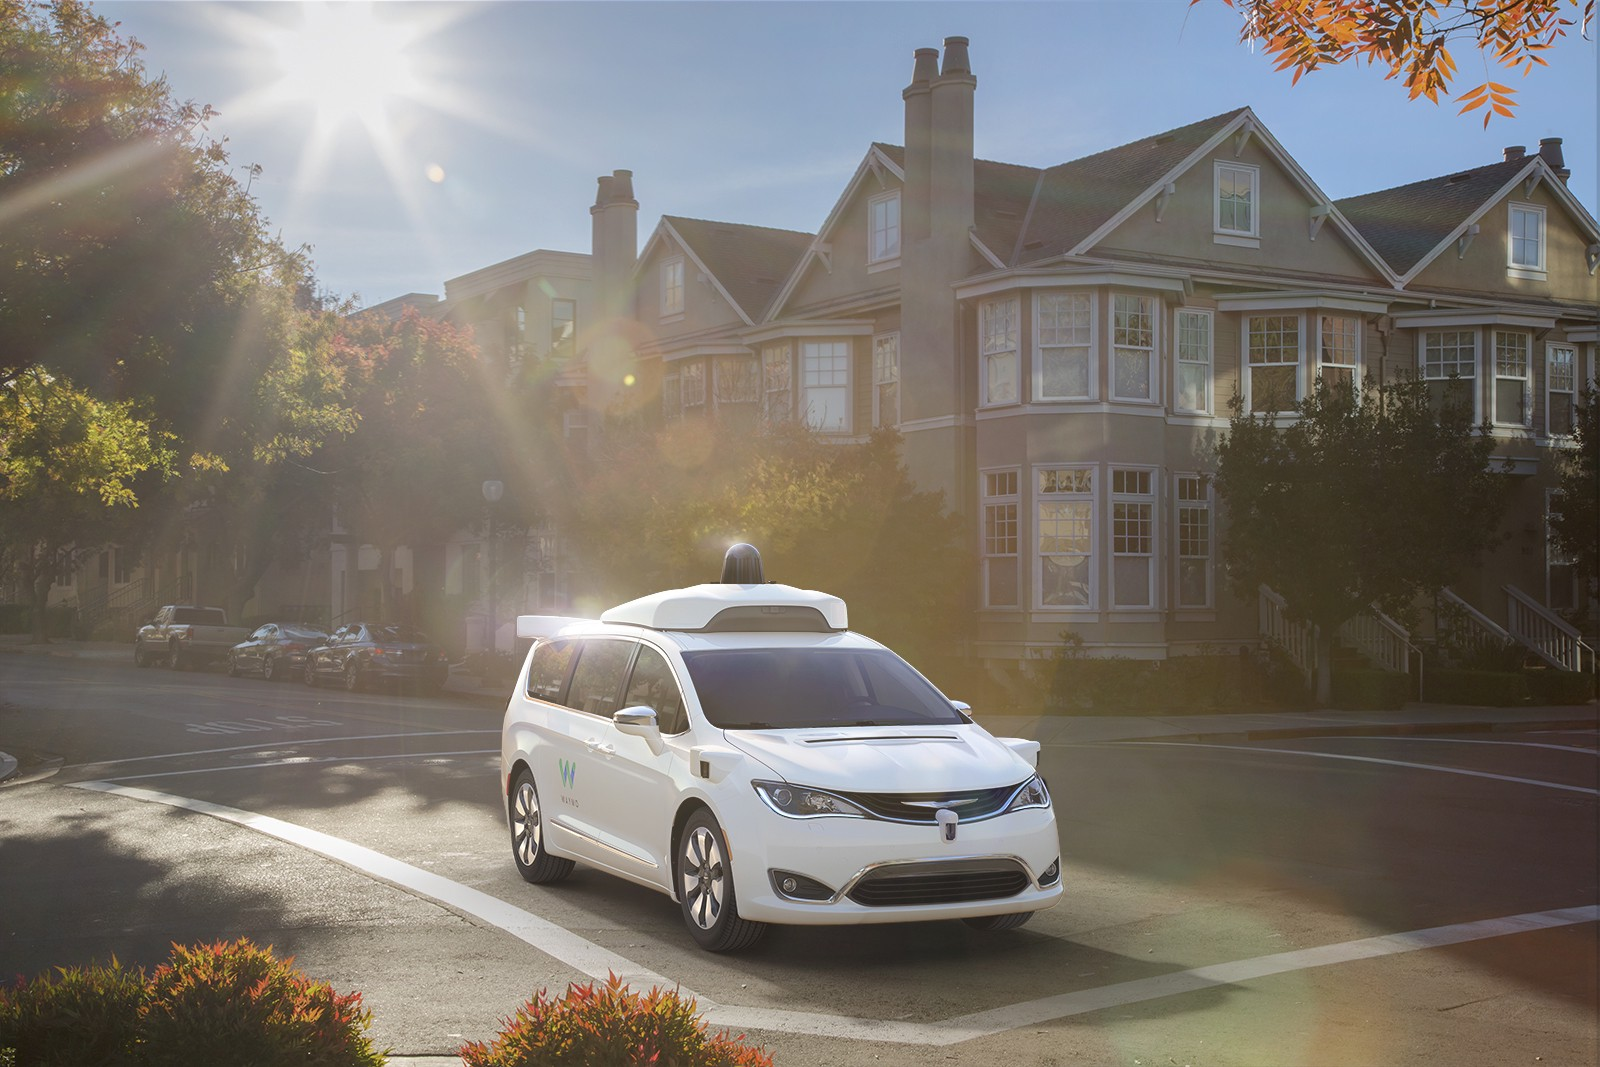 Waymo and Lyft agreed to work together